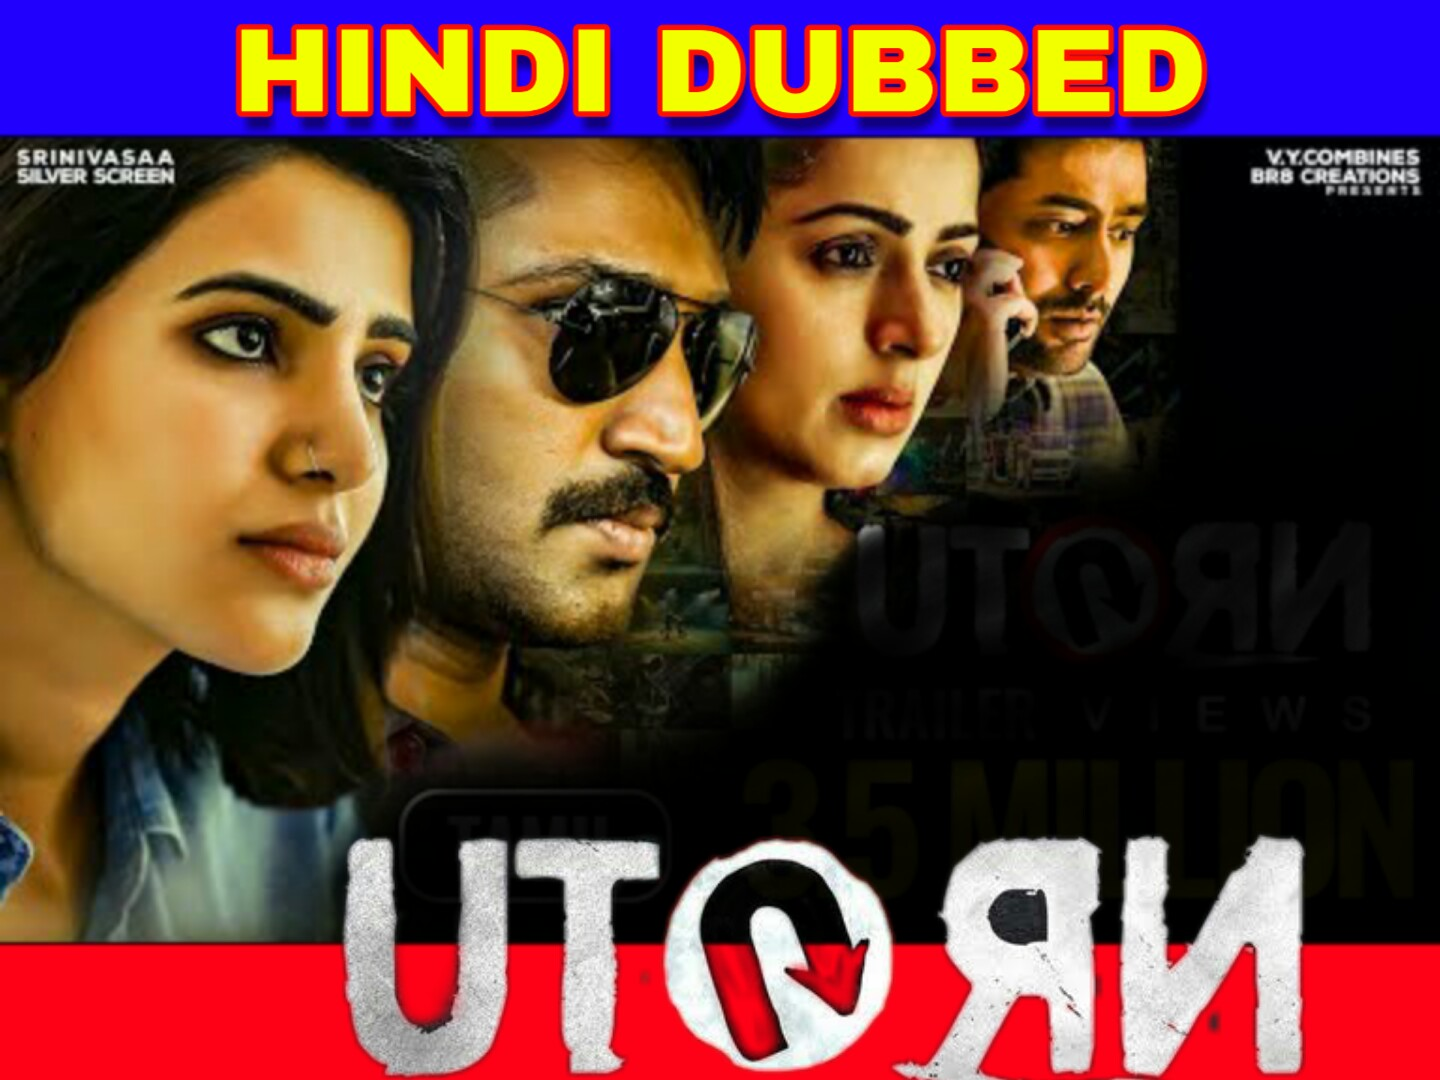 U Turn Hindi Dubbed Full Movie Download Filmywap, Filmyzilla, mp4moviez, Skymovieshd